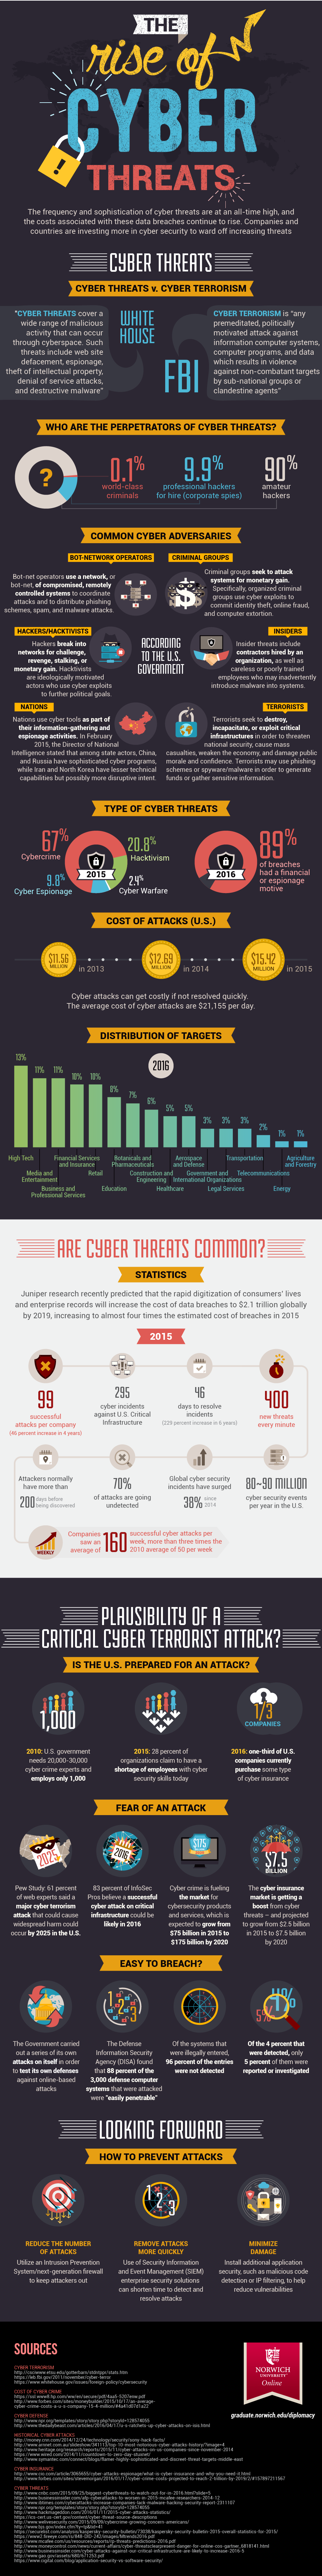 The Rise of Cyber Threats